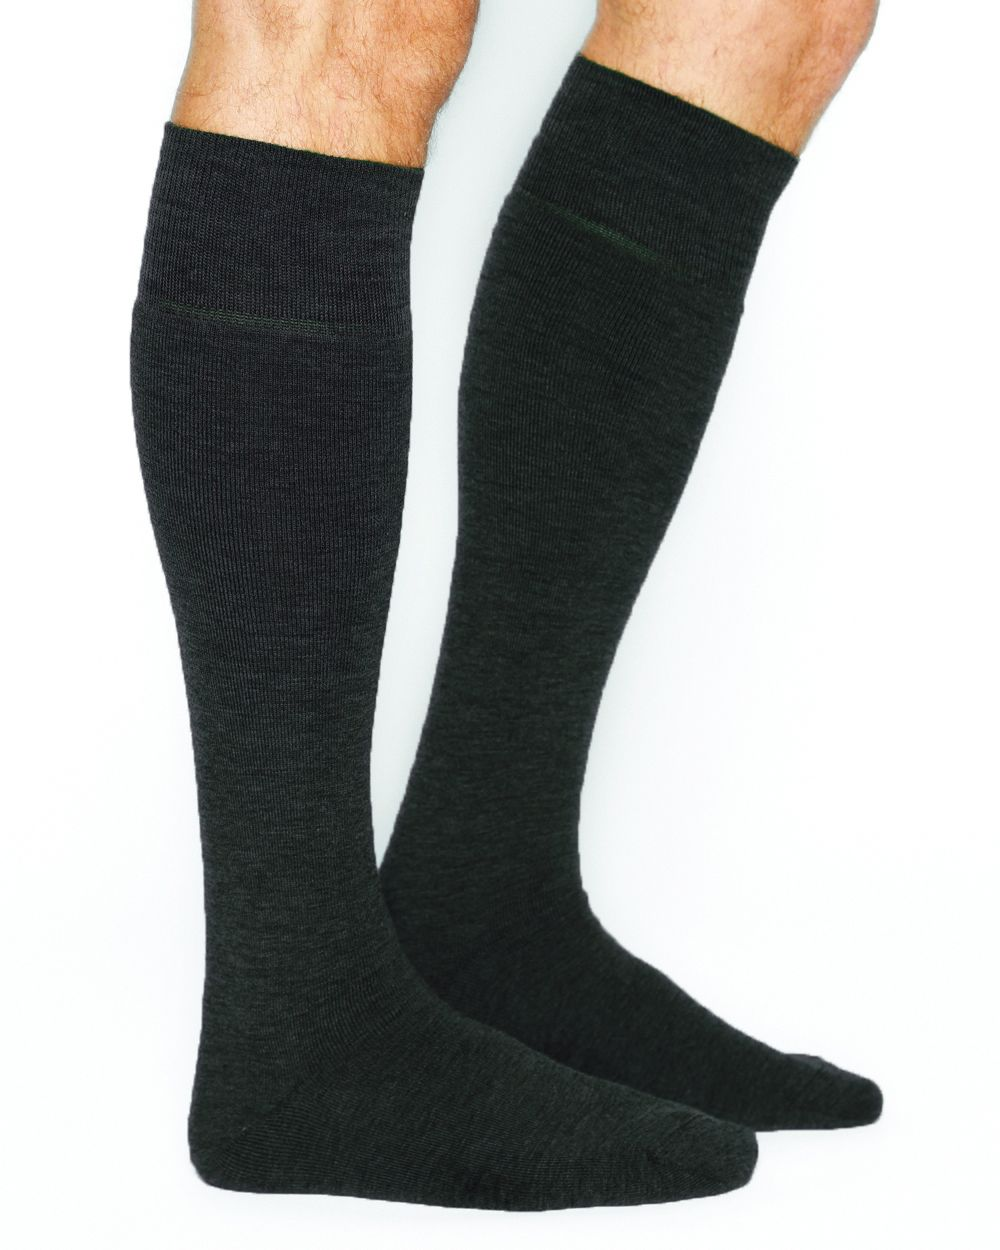 Warm wool over the calf socks